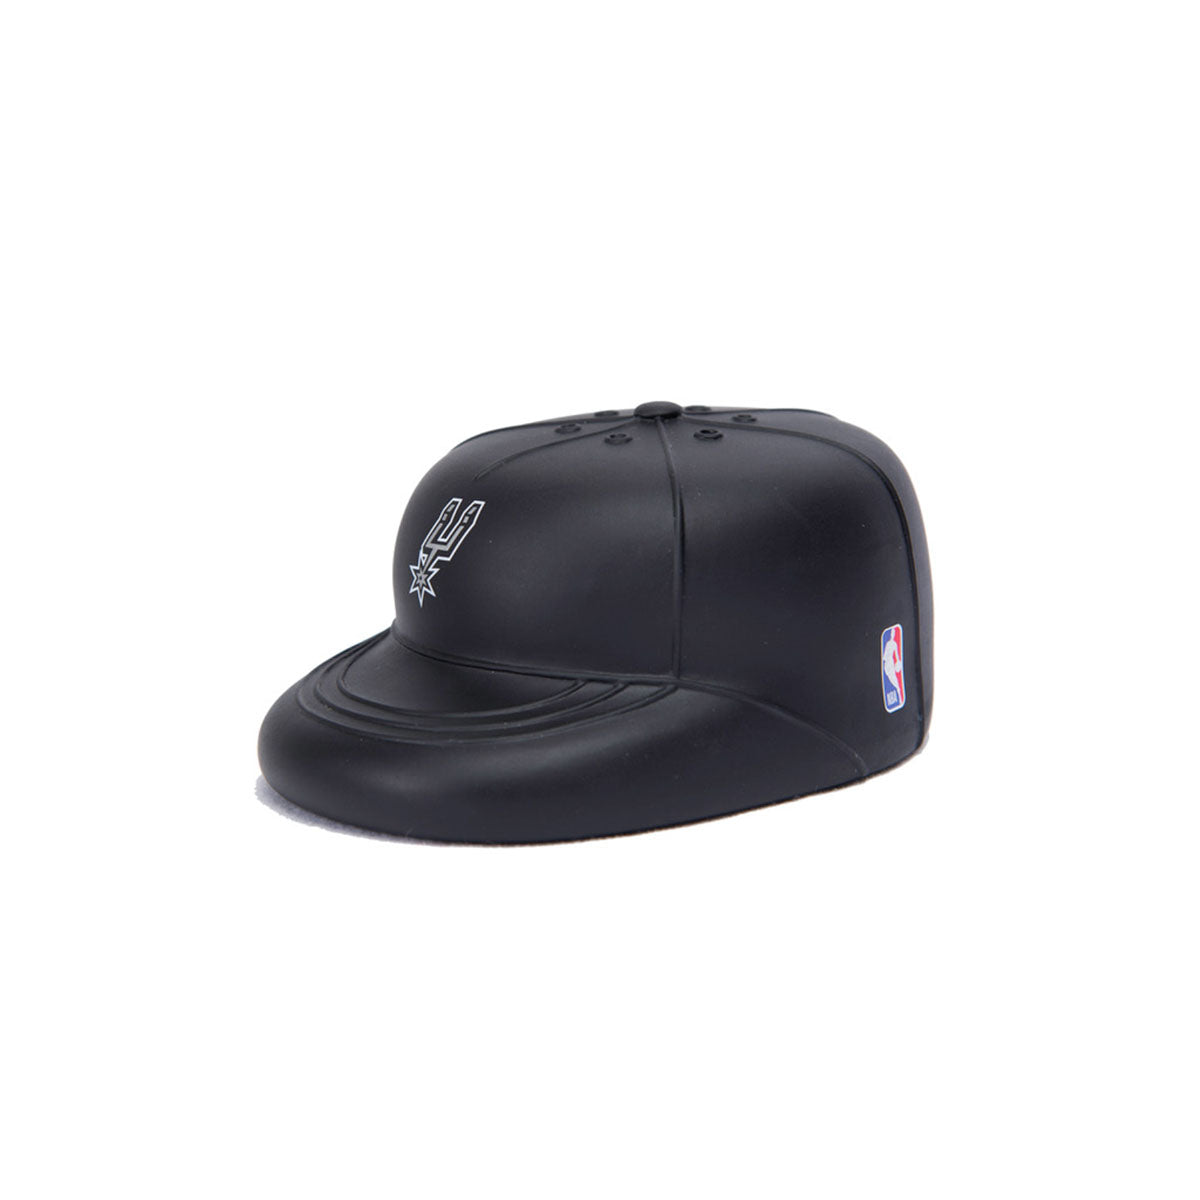 Nap Cap - NBA - San Antonio Spurs PlayCap Chew Toy